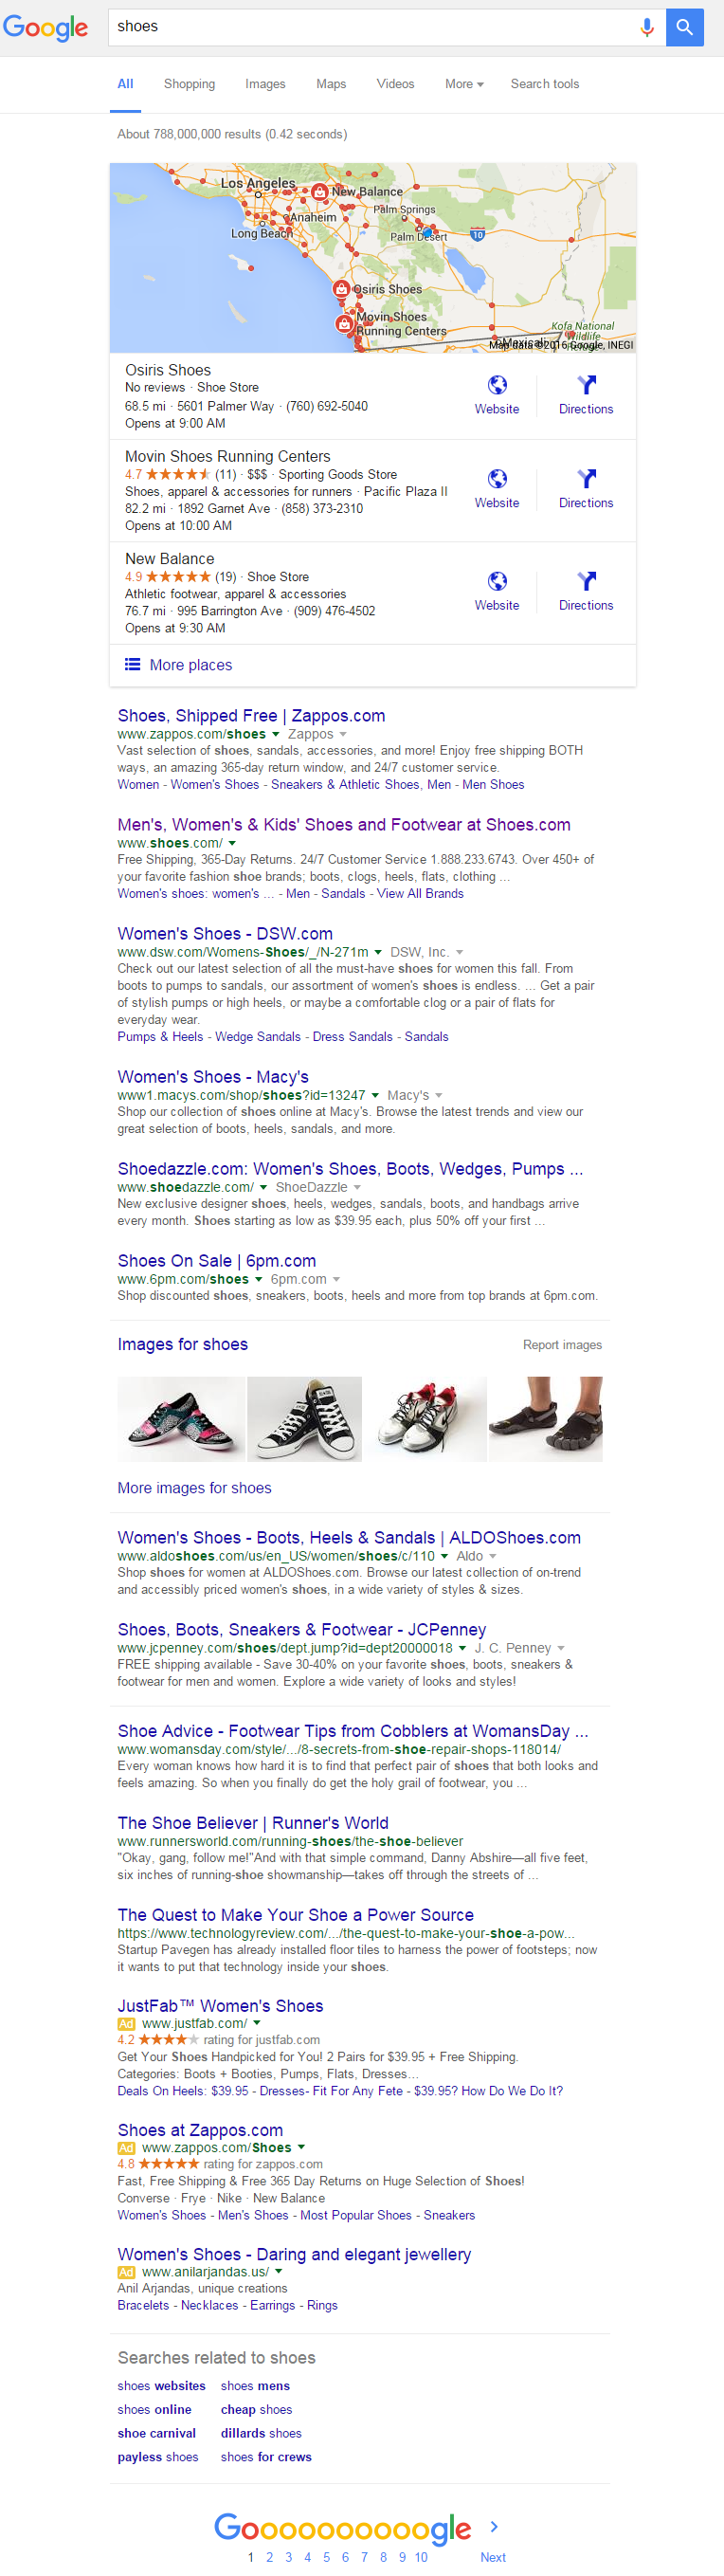 adwords only bottom 2a